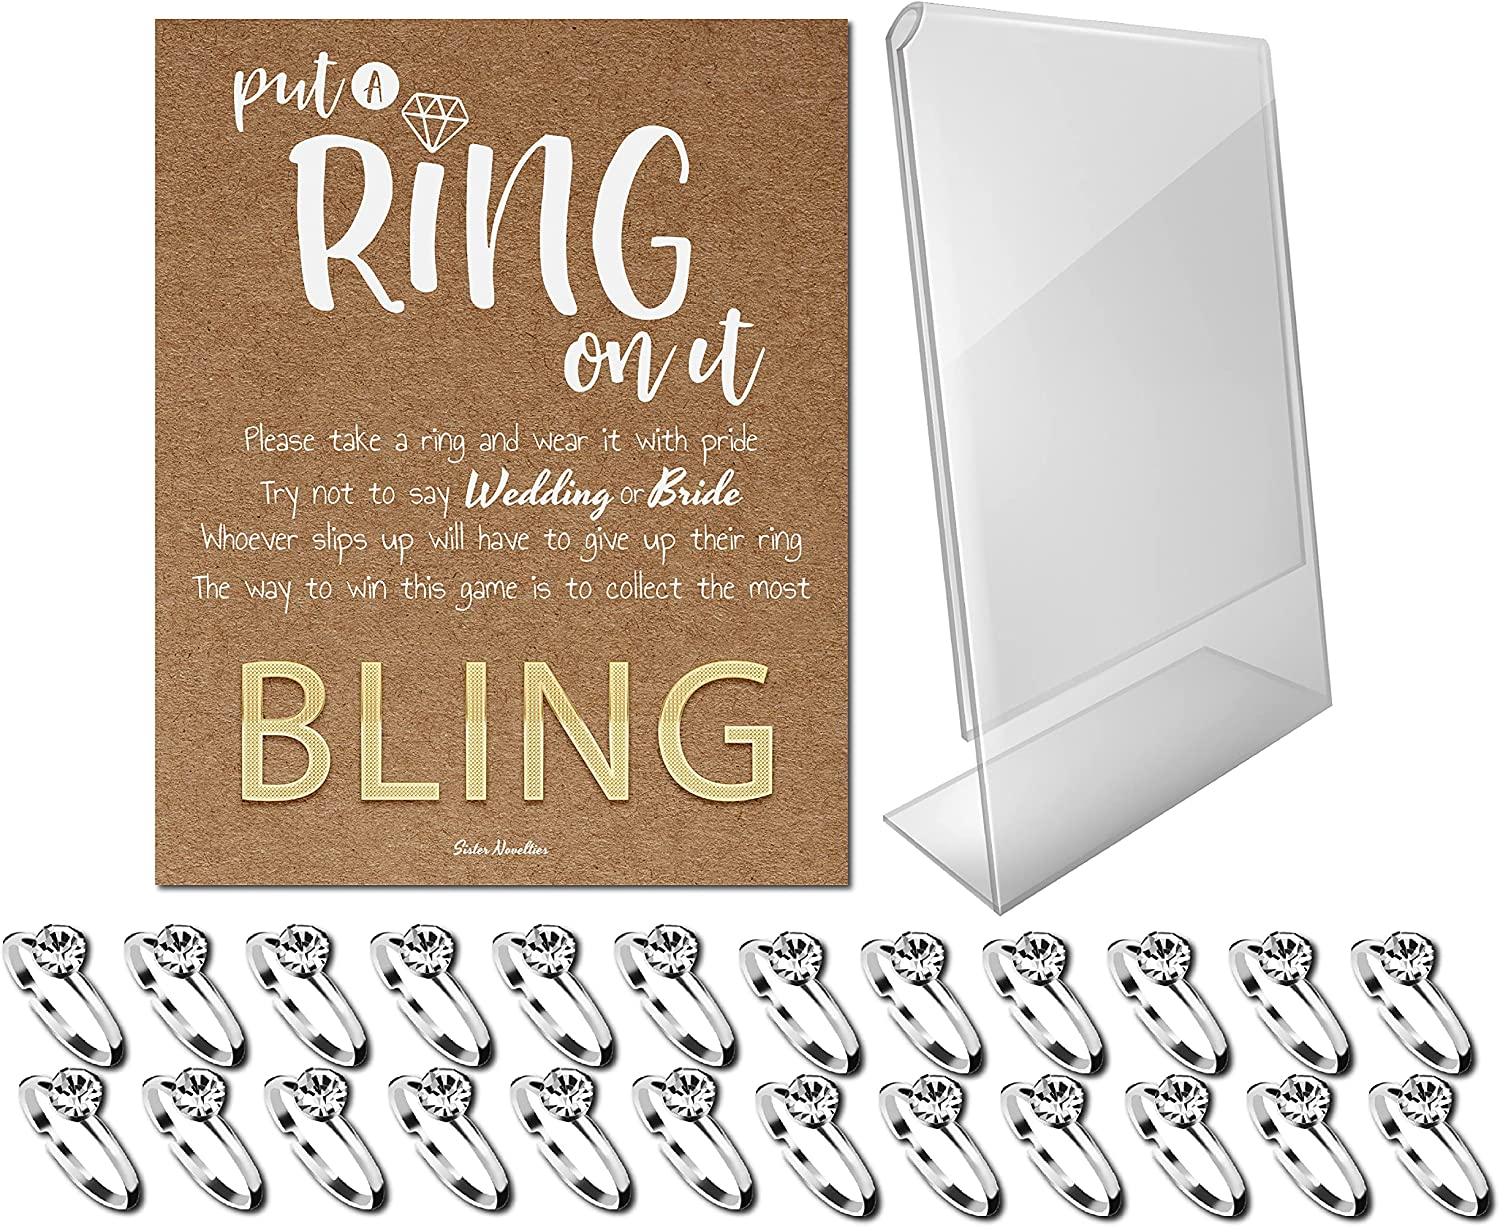 Bridal Shower Games - Put a Ring on It Bridal Shower Game with Fake Rings, Bridal Shower Decor, Bridal Shower Decorations, Bridal Shower Games for Guests (Craft - Silver 24 Count)